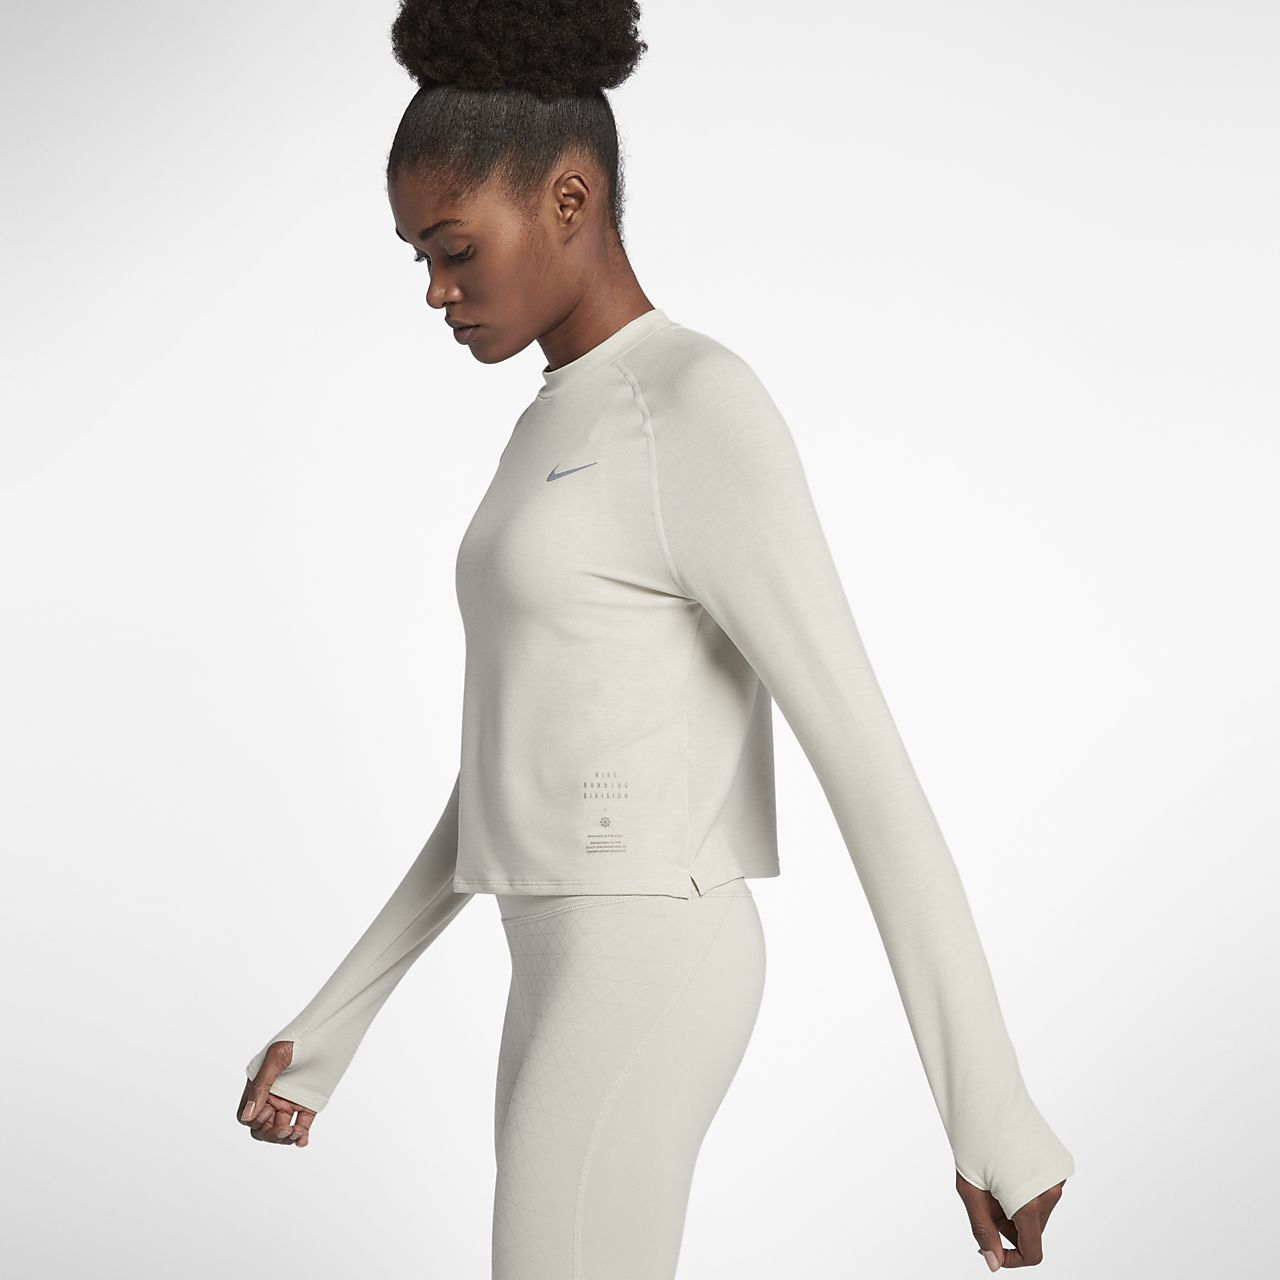 ... Nike Run Division Women's Long Sleeve Running Top